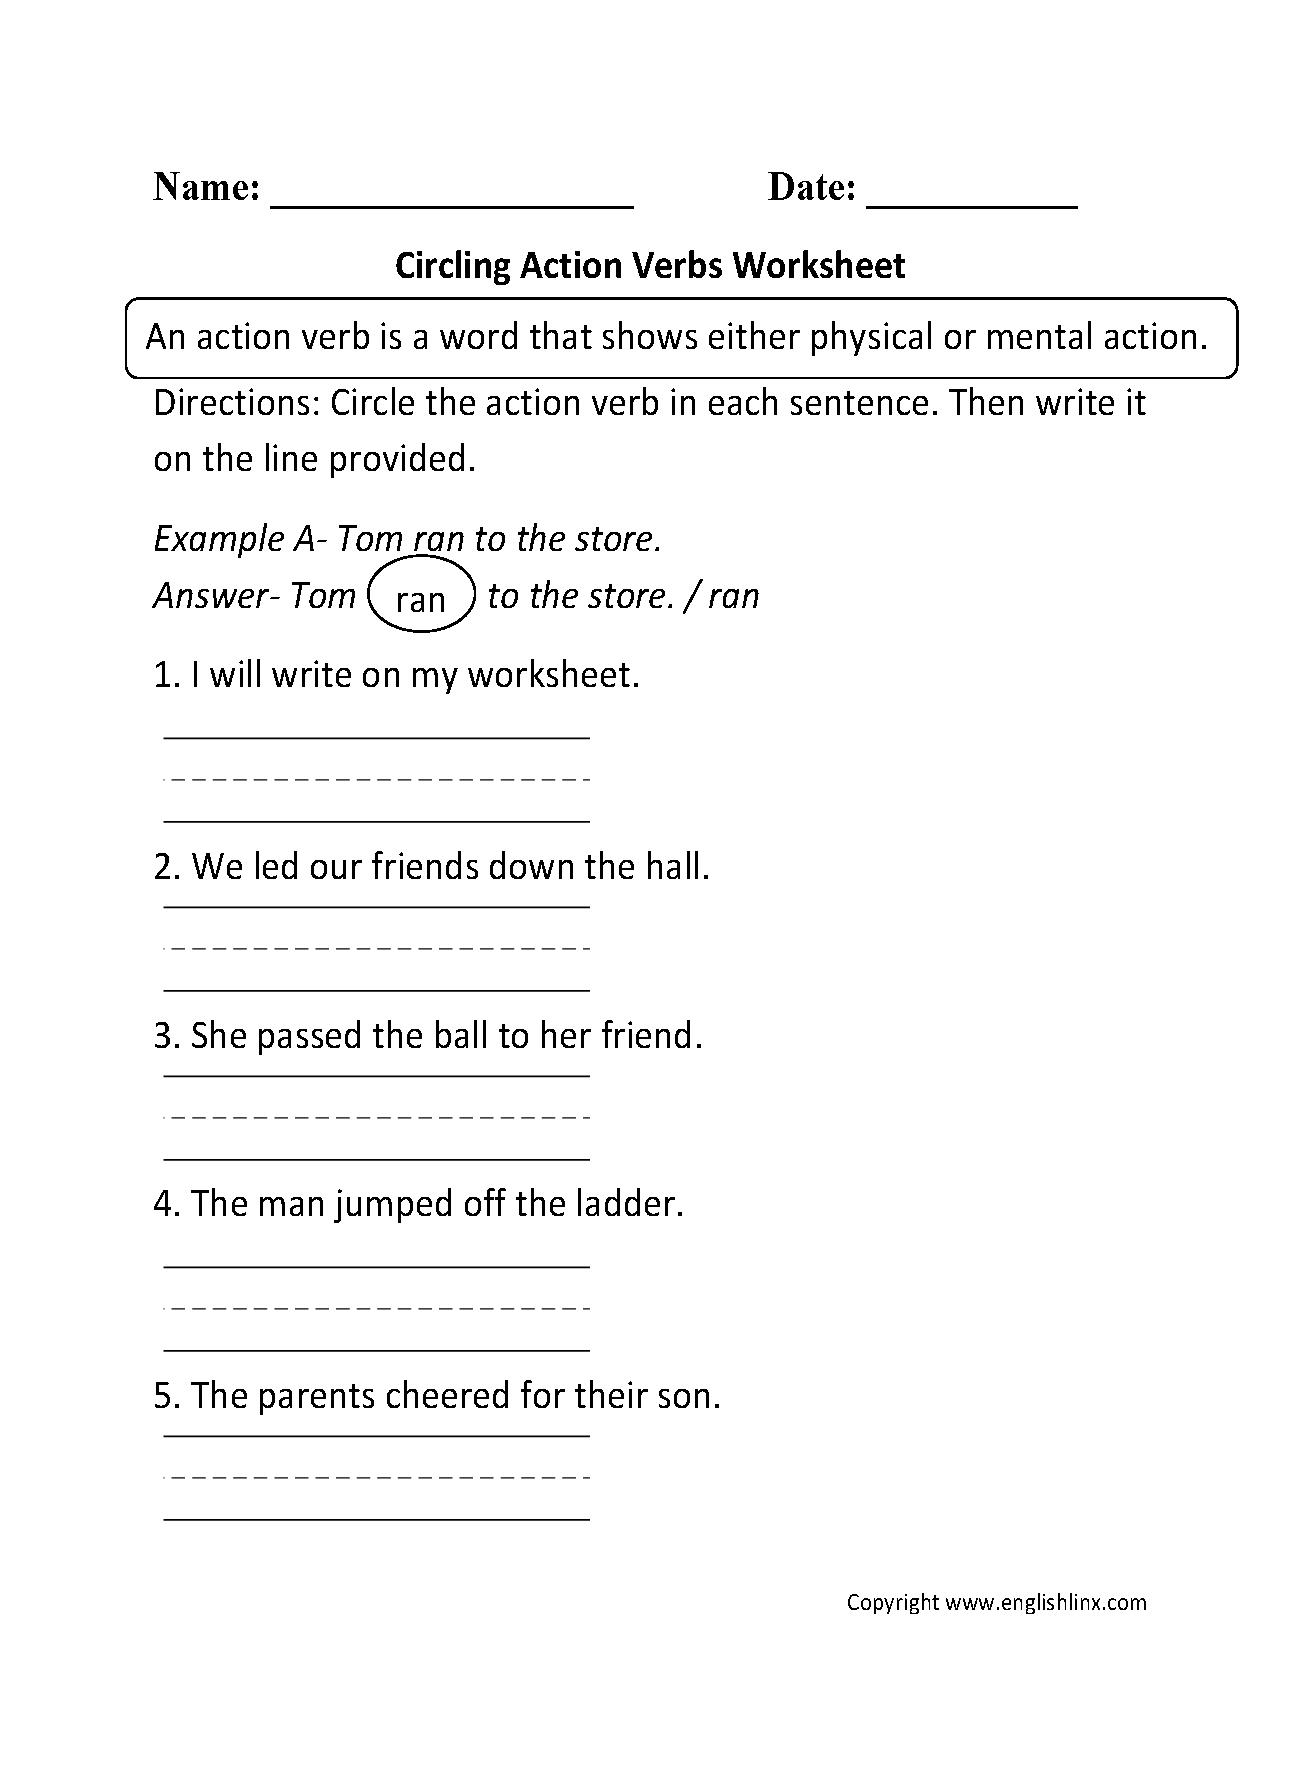 medium resolution of Circling Action Verbs Worksheet   Verb worksheets